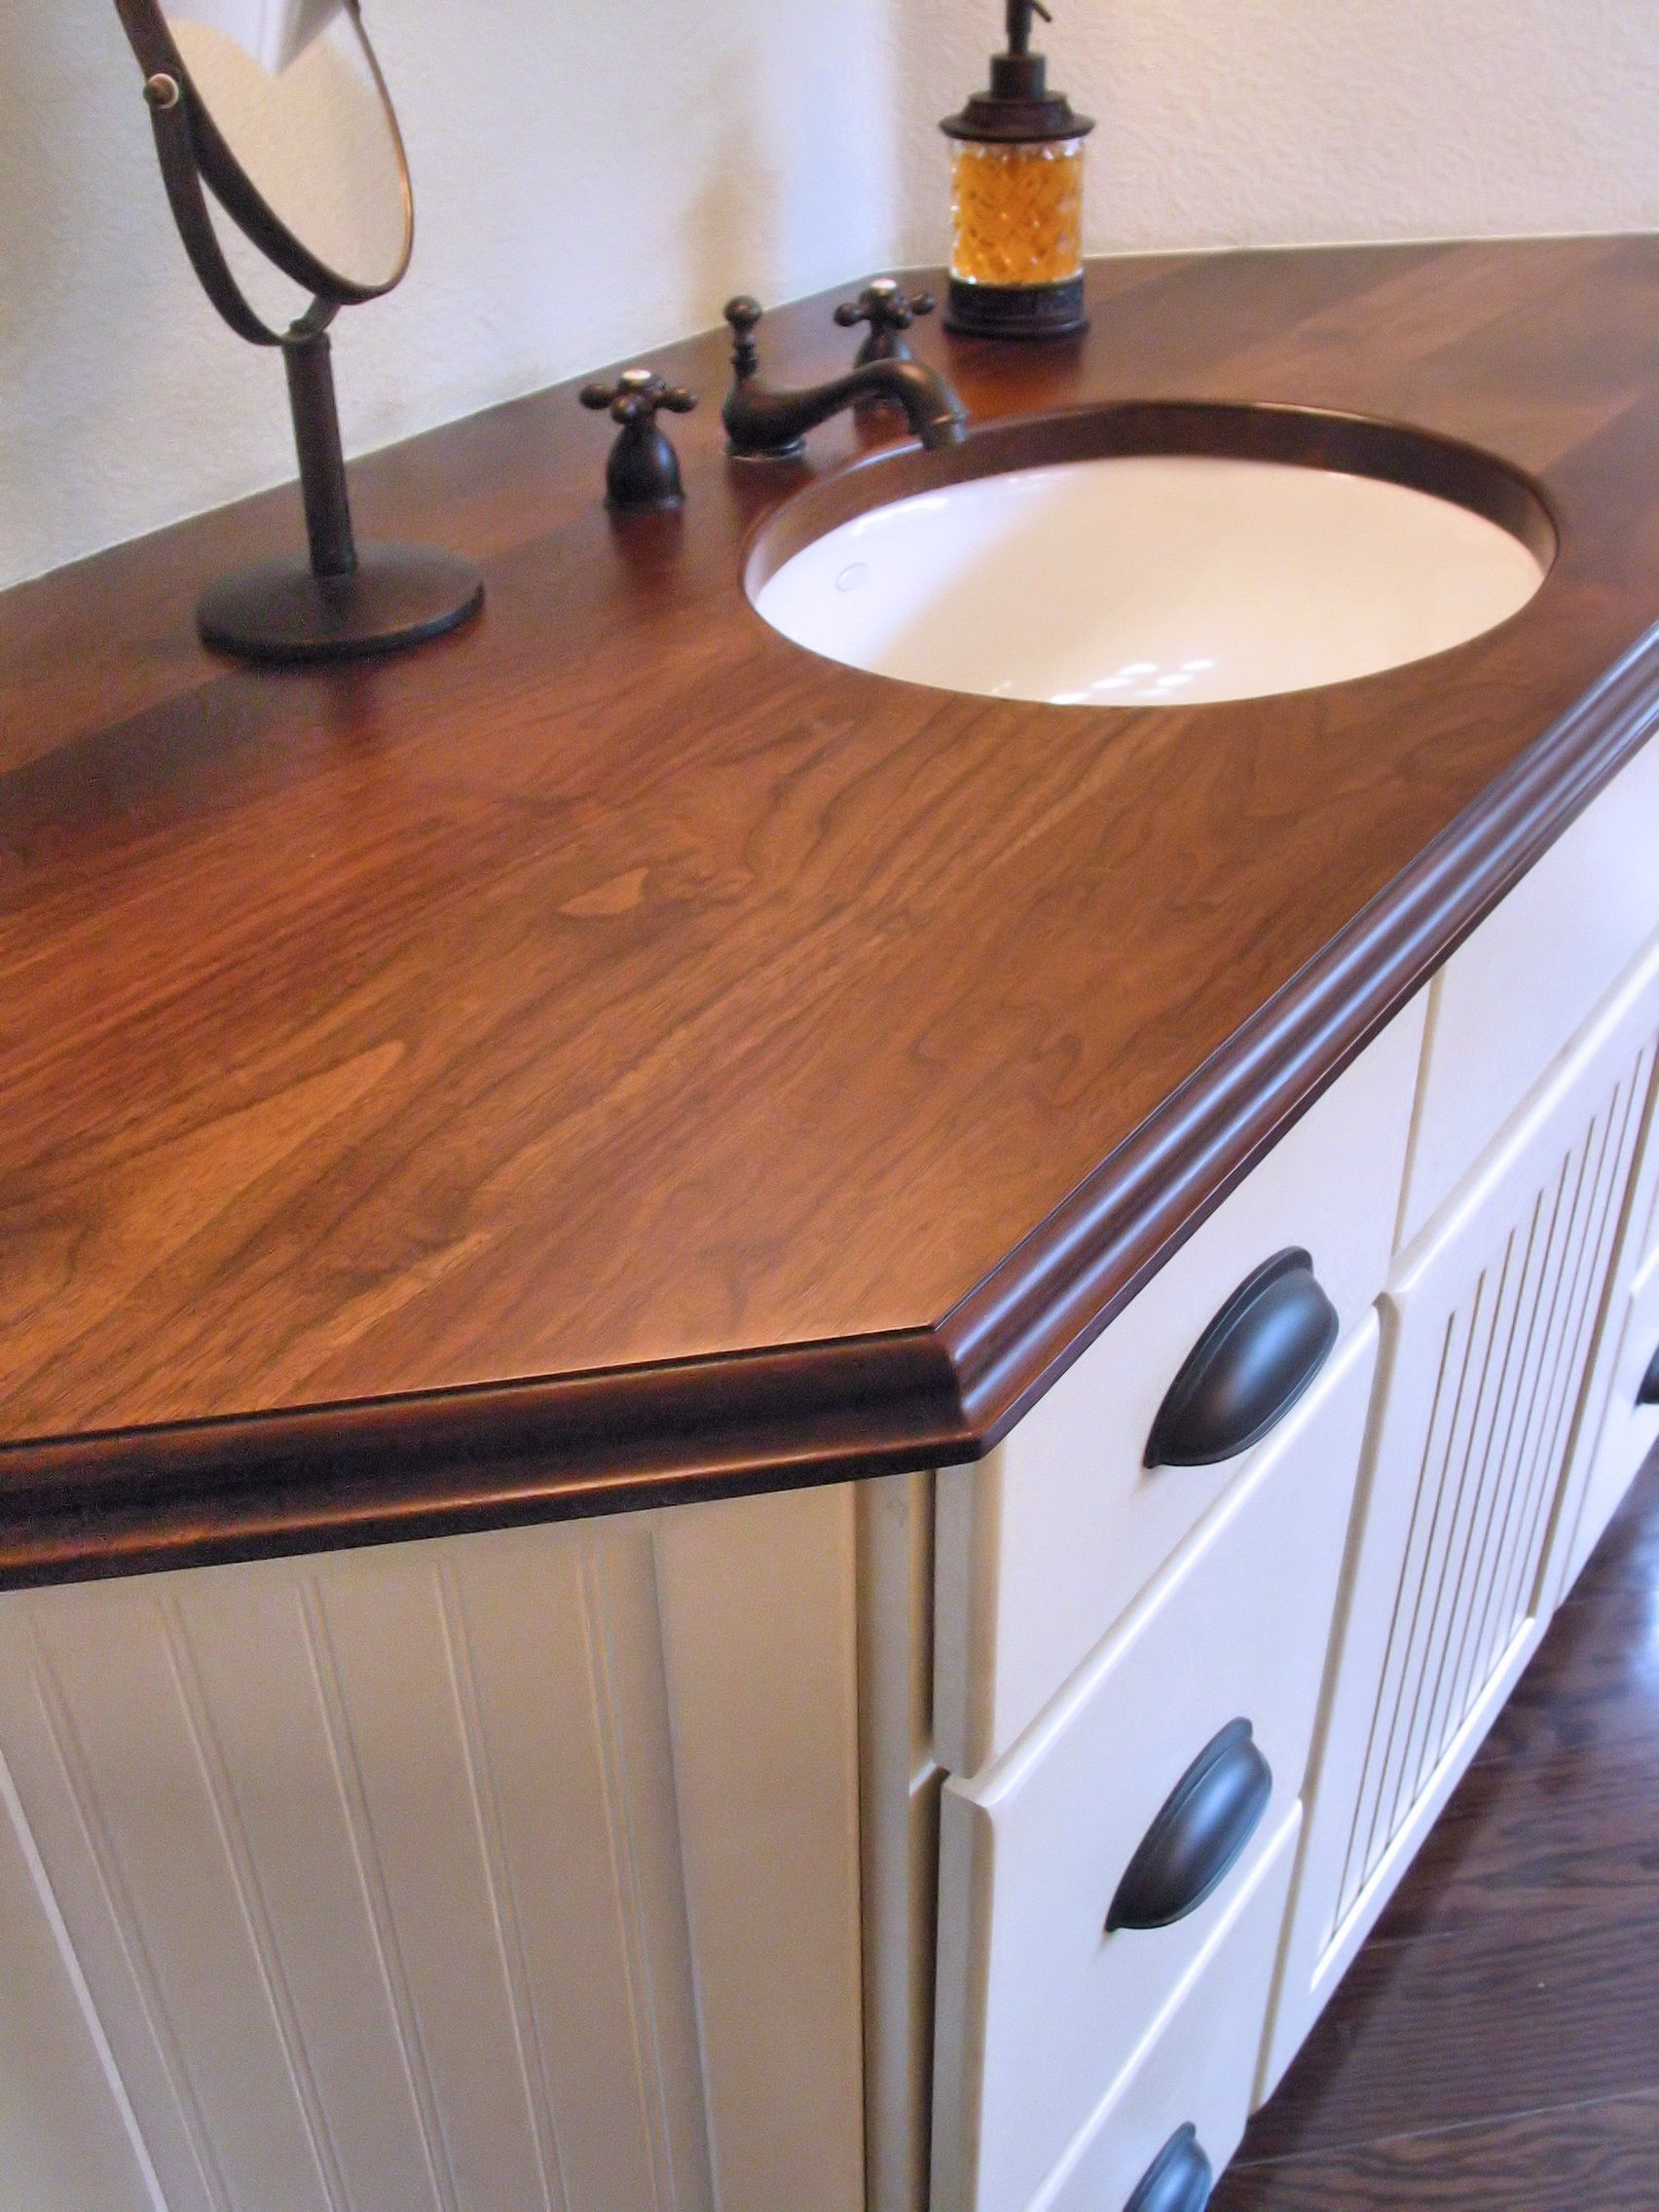 Vanity Wood Top : Walnut face grain wood vanity countertop